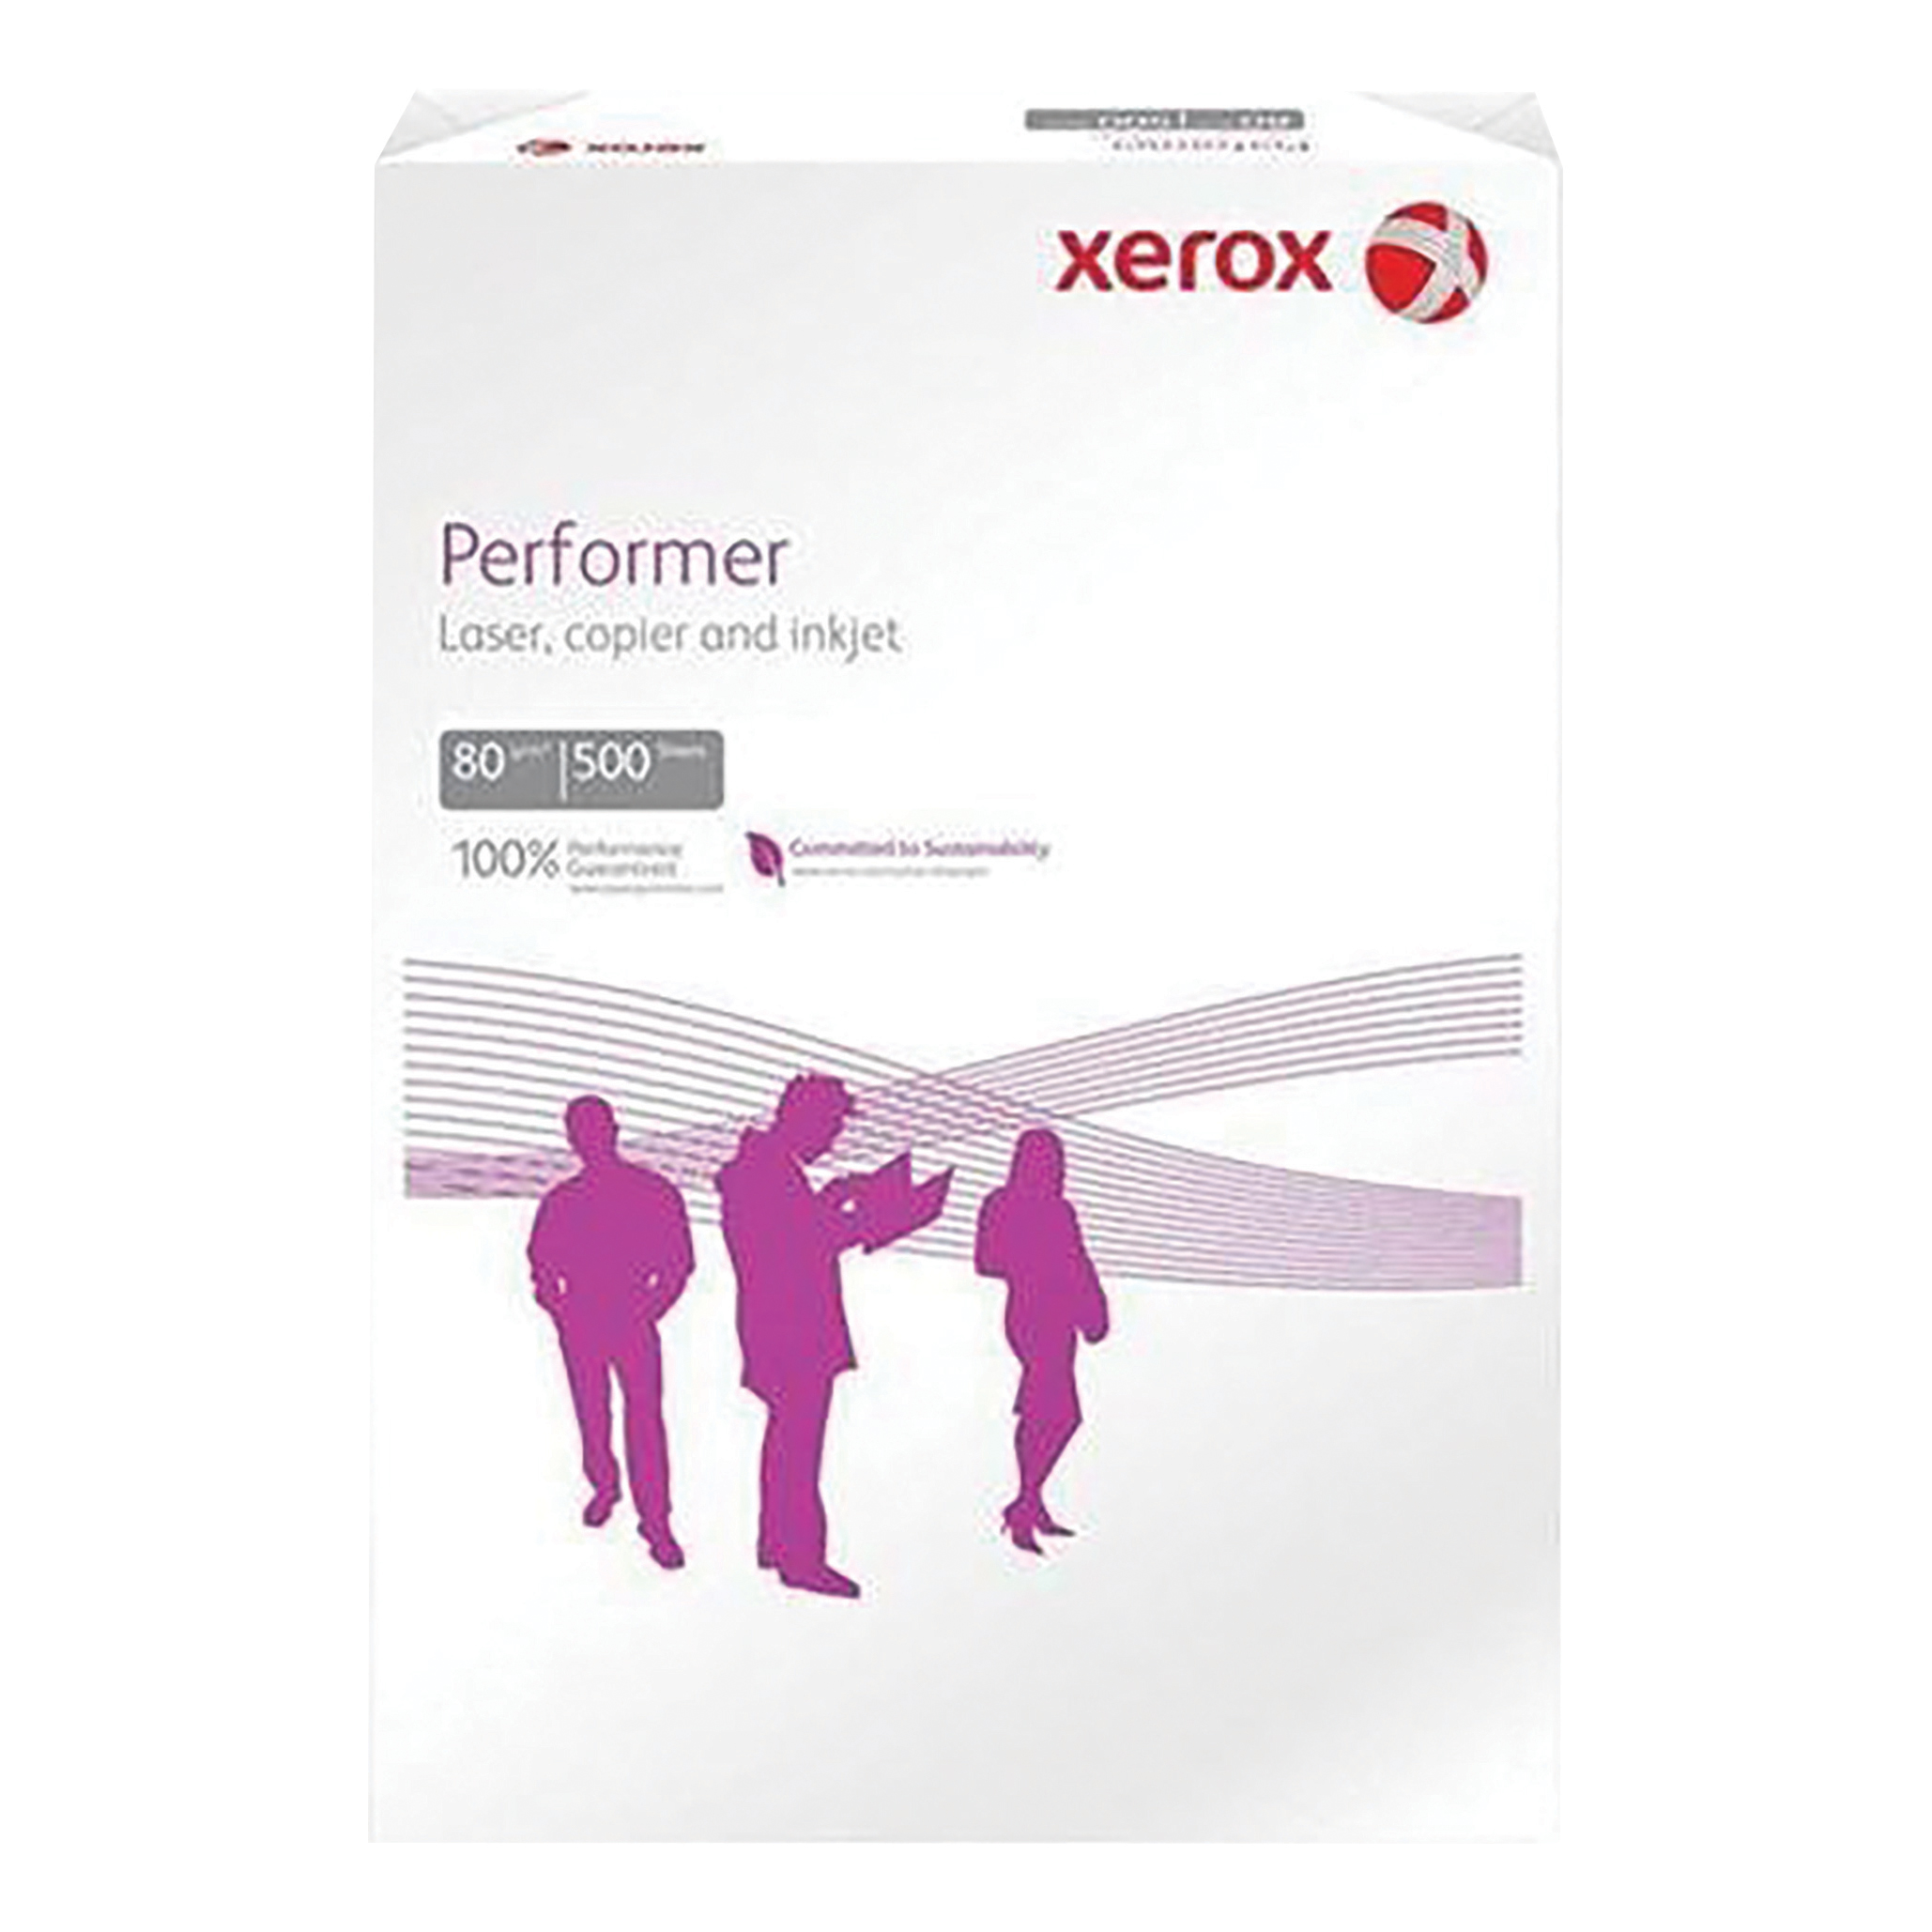 Xerox Performer Multifunctional Paper Ream-Wrapped 80gsm A4 White Ref 62304 500 Sheets